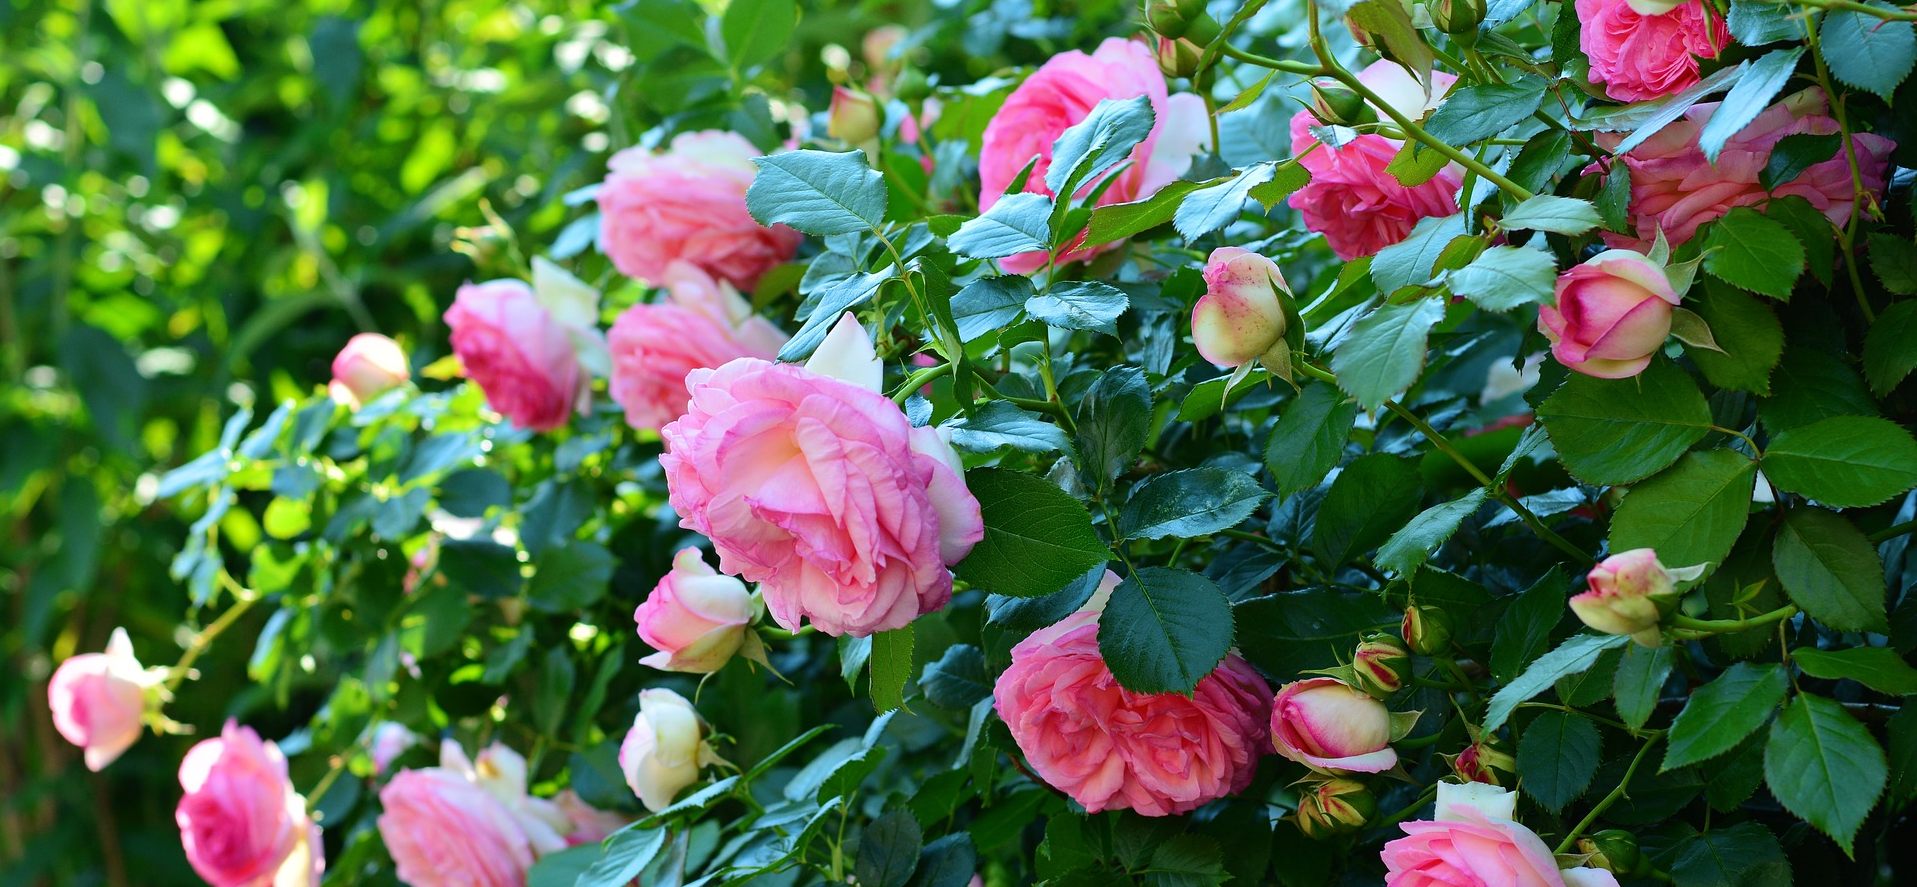 Rose bushes can be affordable landscaping